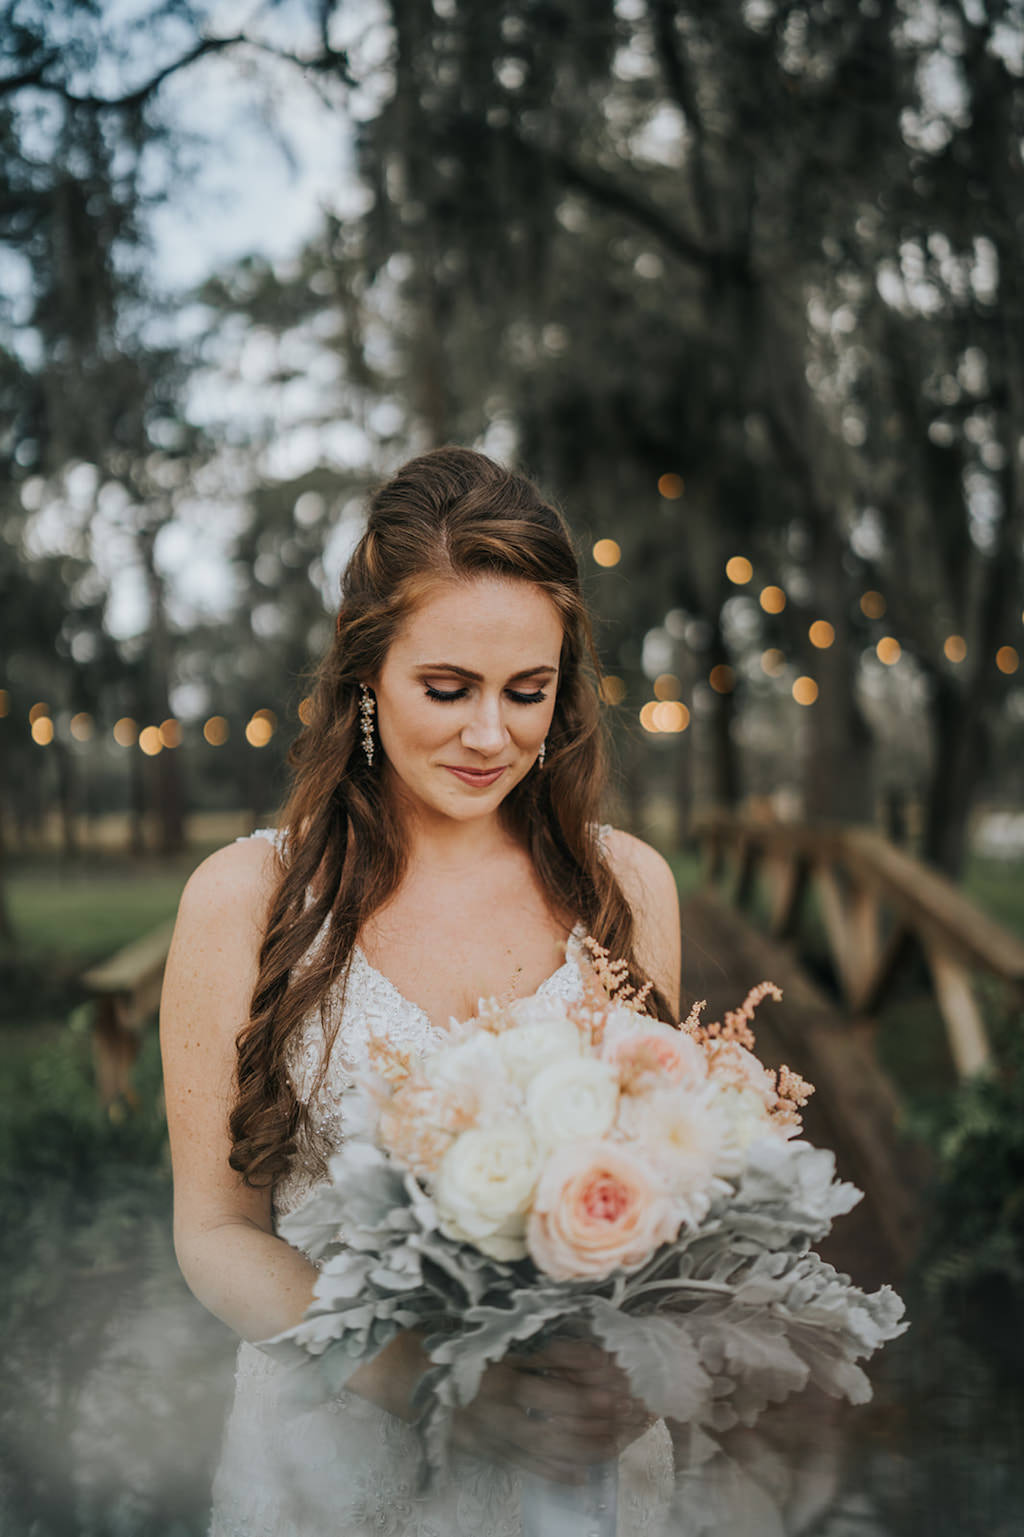 Rustic Chic Tampa Bride Beauty Wedding Portrait Holding Blush Pink and White Roses with Dusty Miller Floral Bridal Bouquet